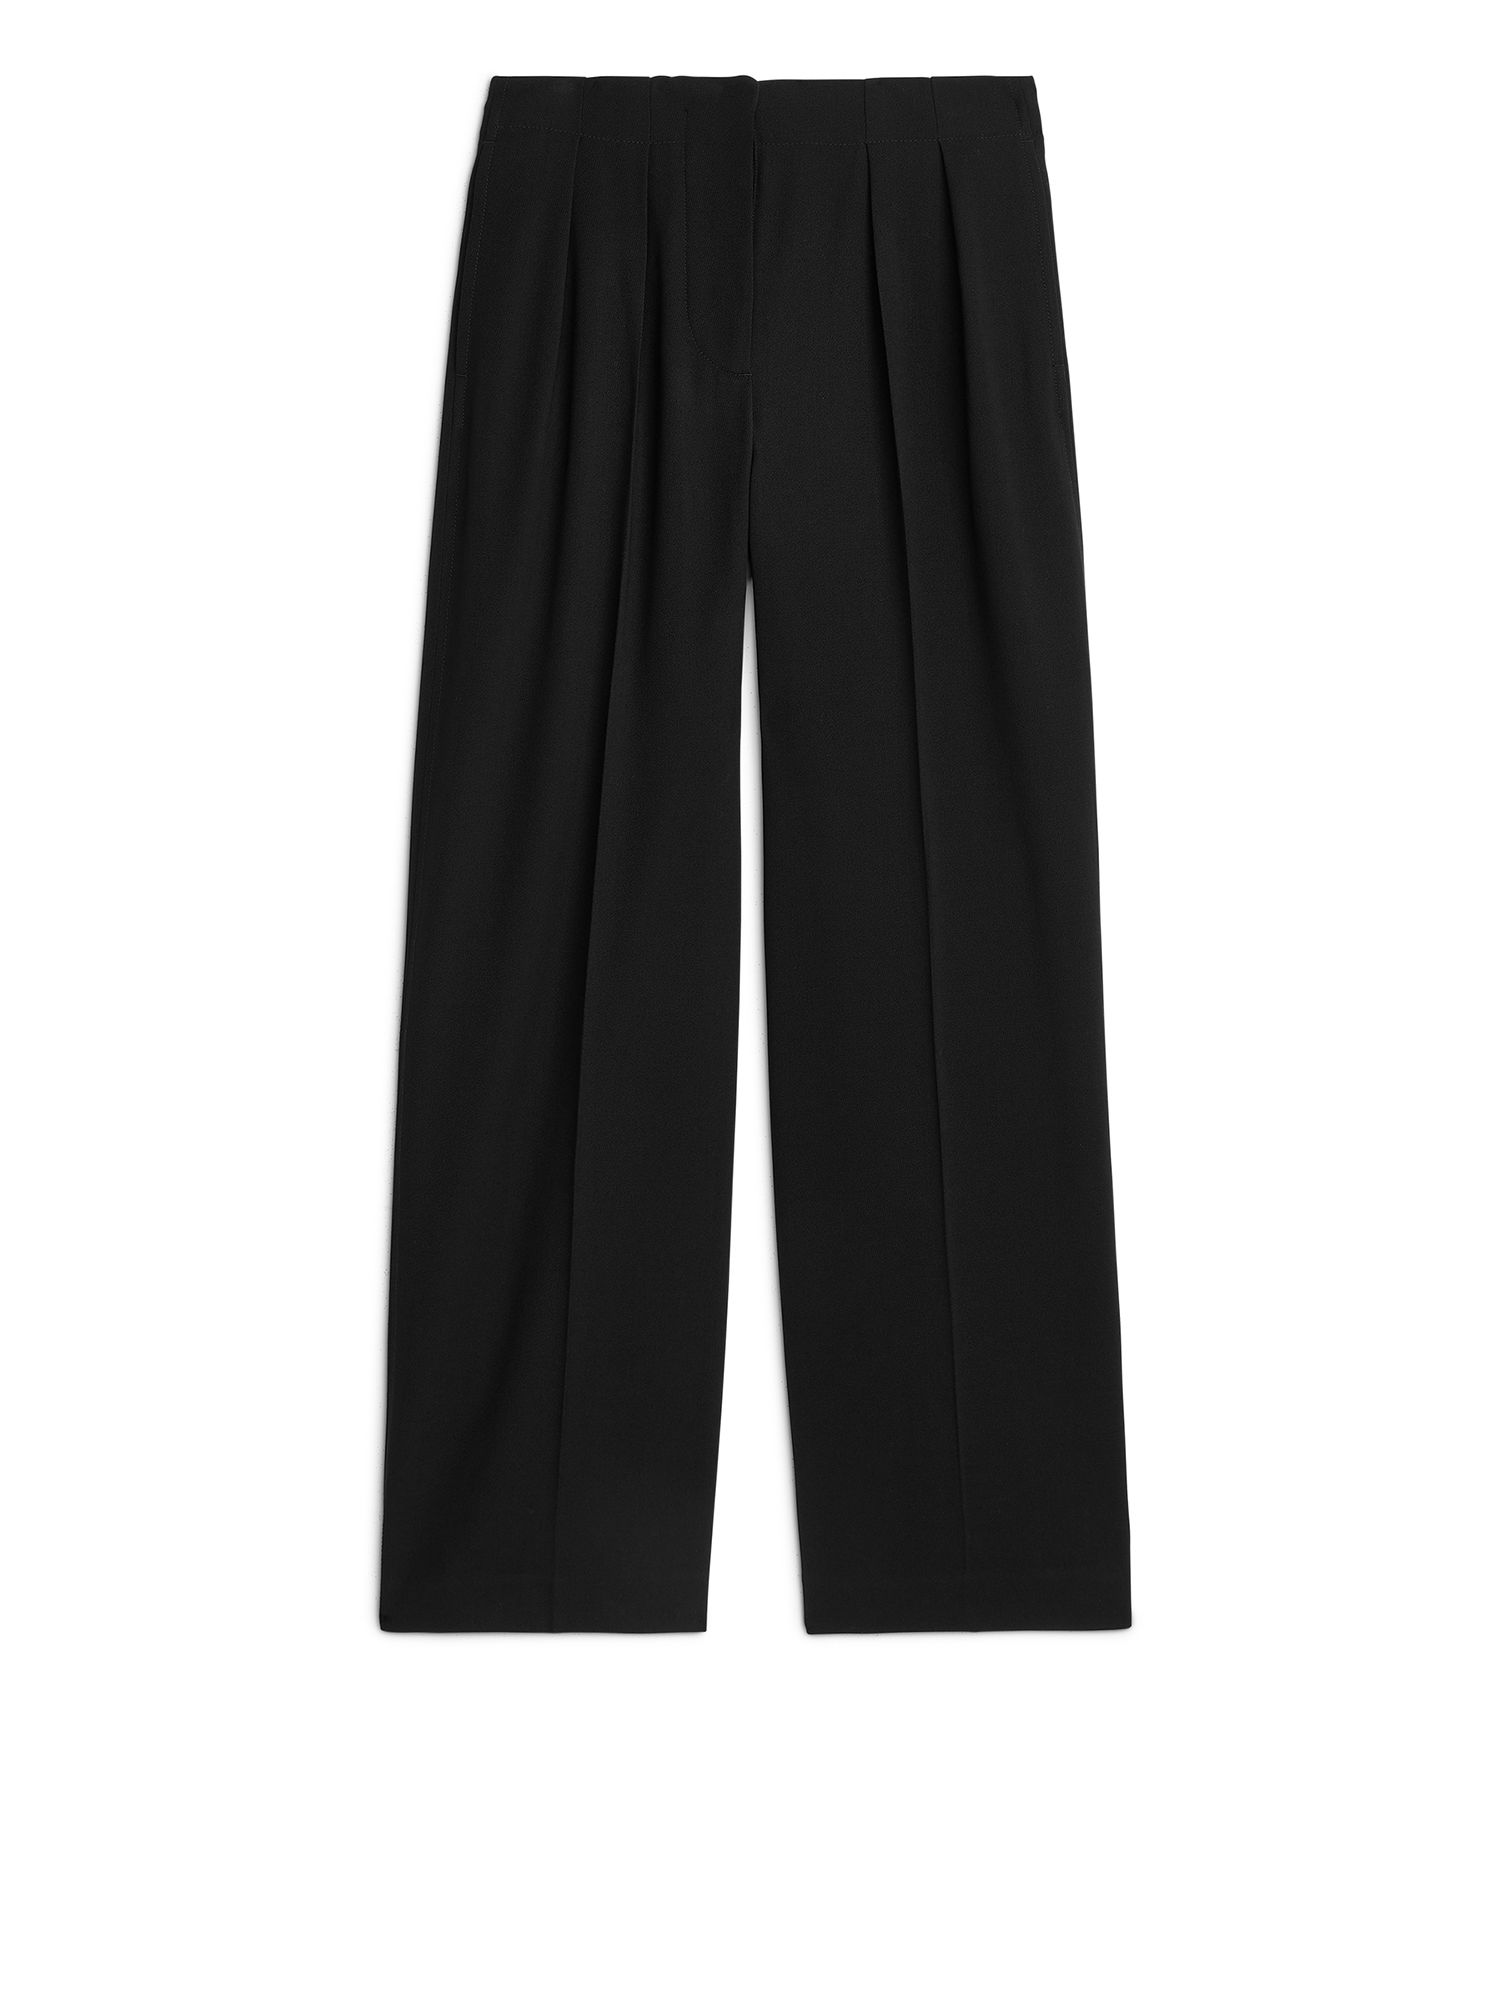 Fabric Swatch image of Arket wide fluid wool trousers in black